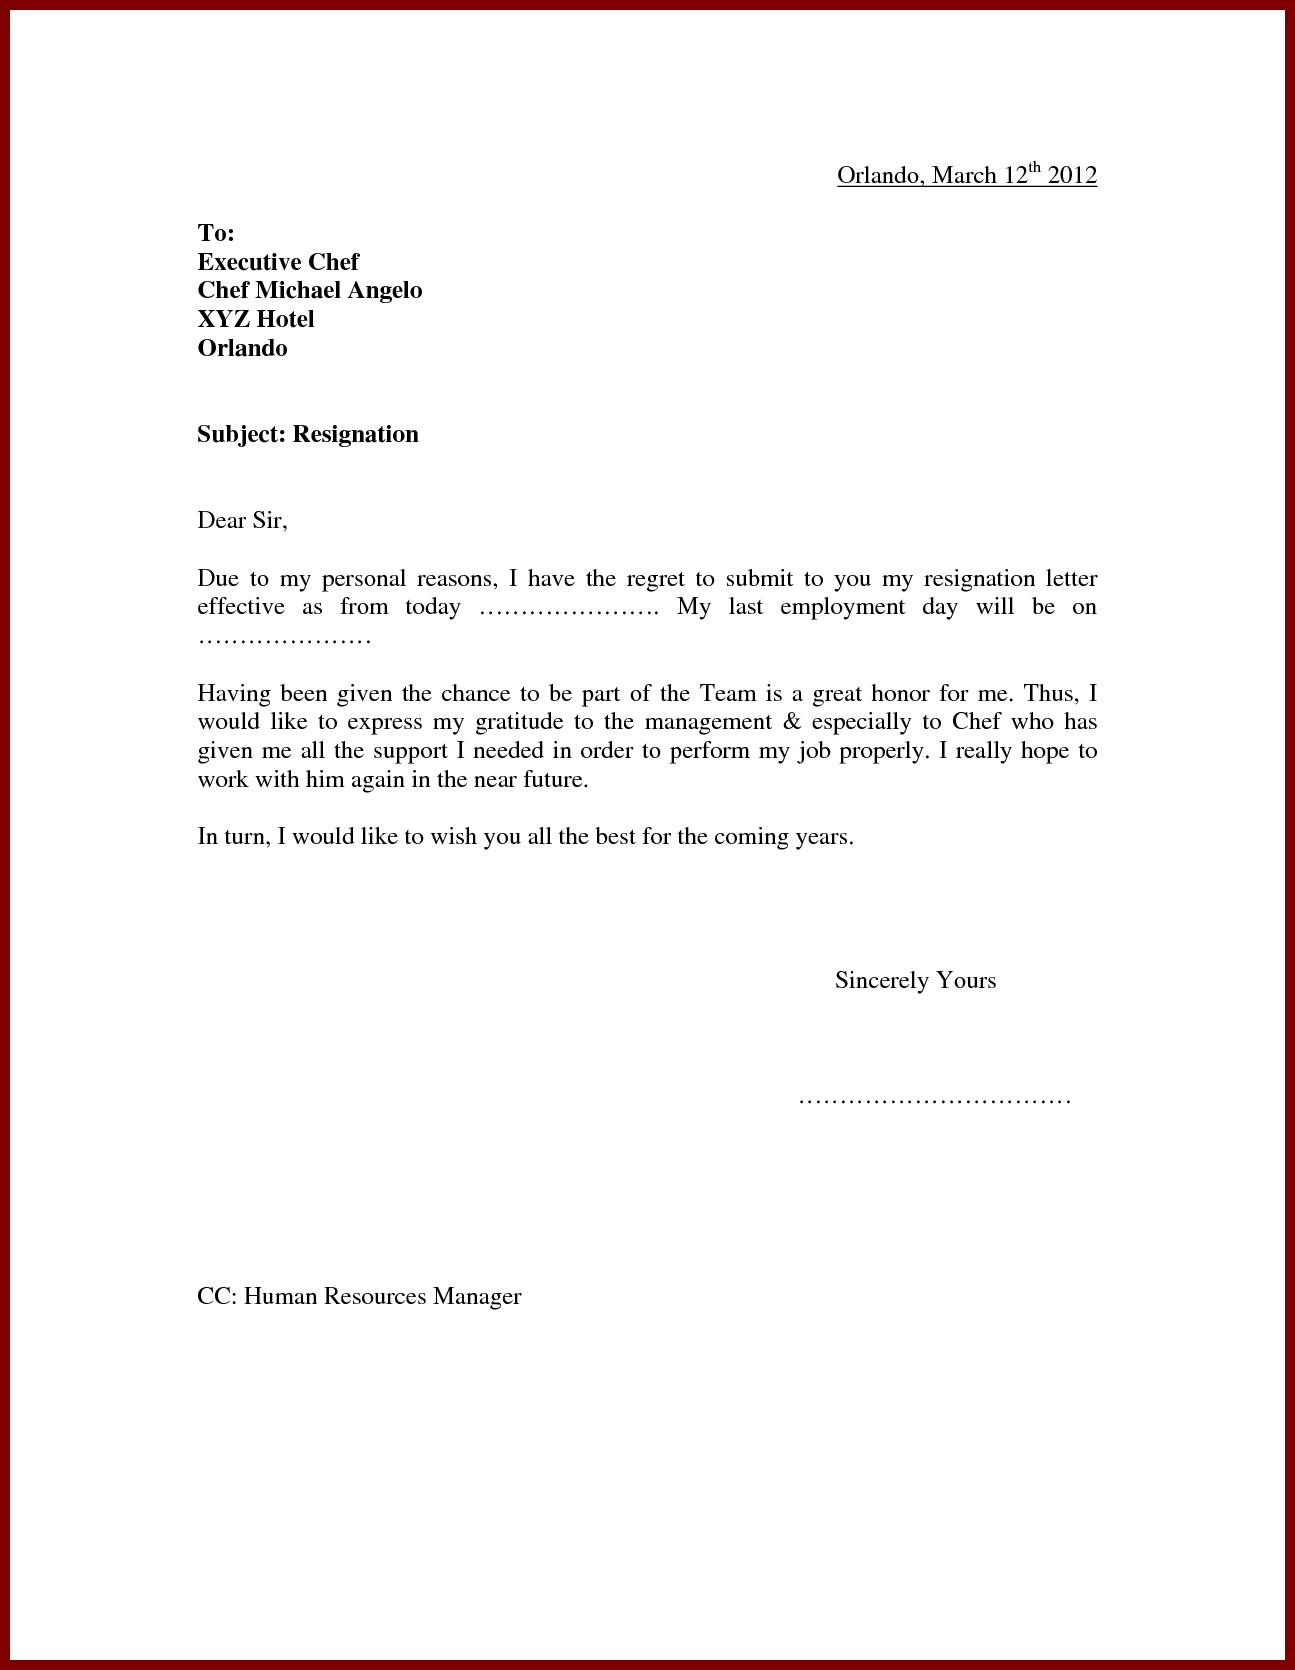 example of resignation letter due to personal reasons samples of resignation letters for personal reasons 21579 | 5b17c7358275a2d66b3baded78790dbe